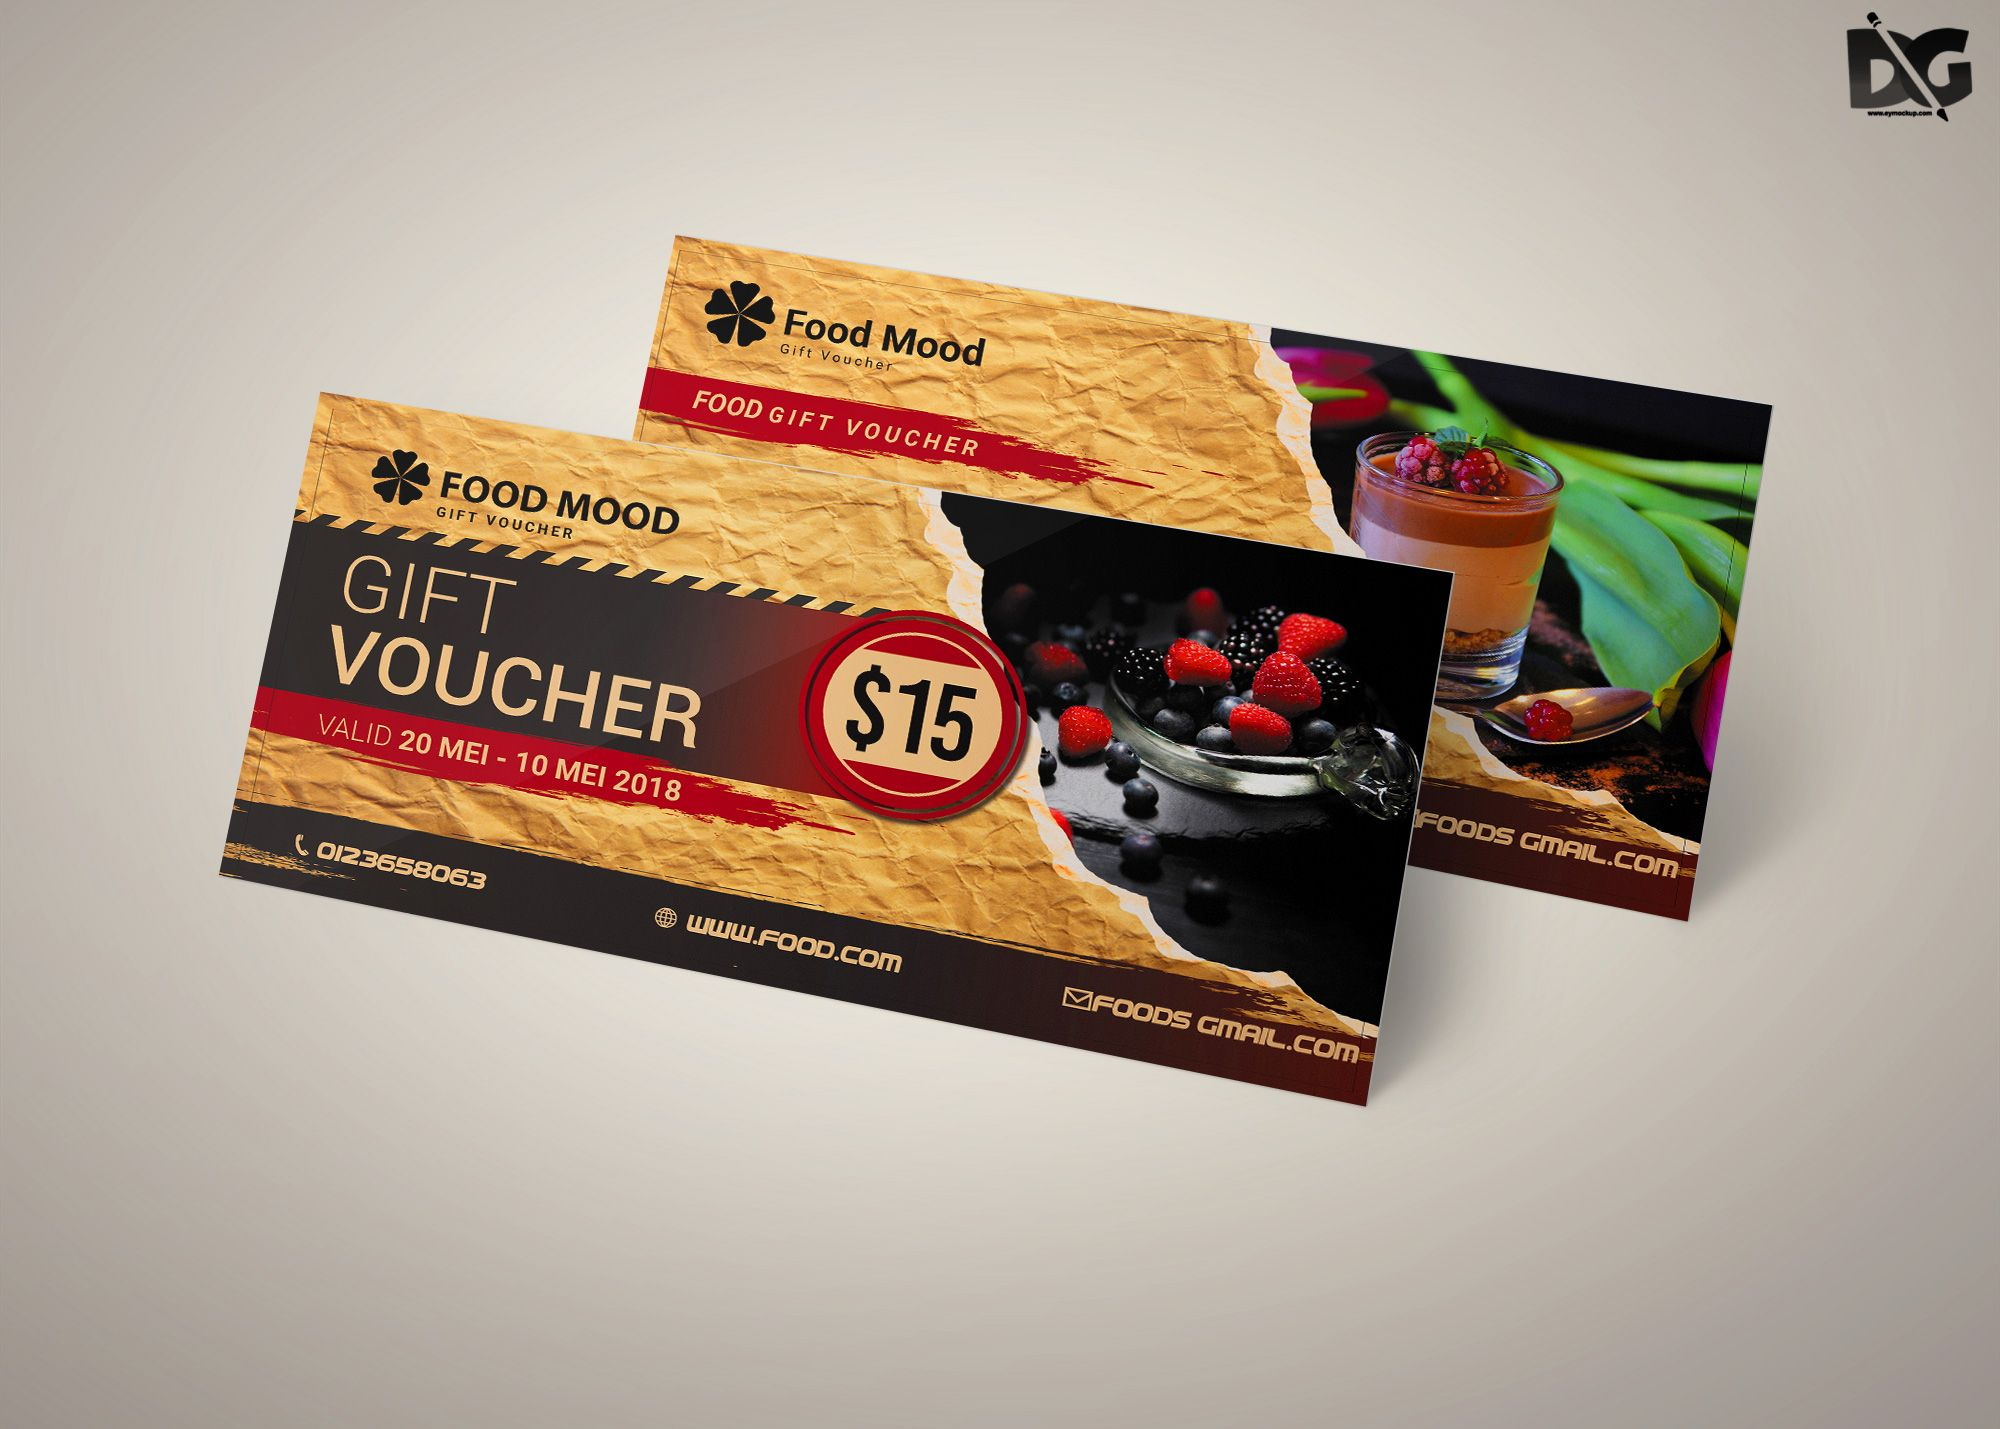 Free Download Food Mood PSD Gift Card Template | Free Psd